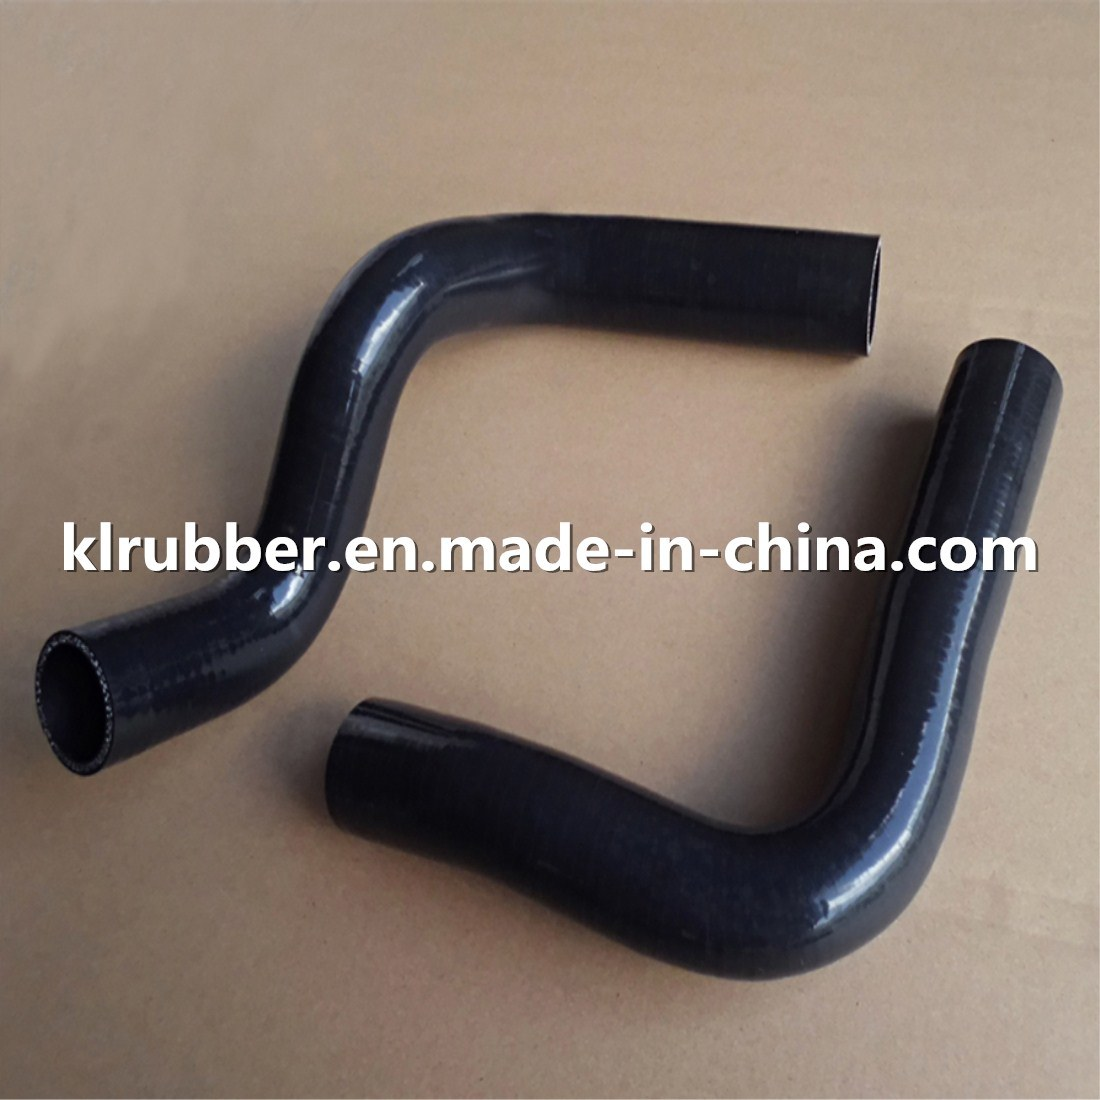 Custom Flexible Silicone Rubber Auto Turbo Radiator Hose